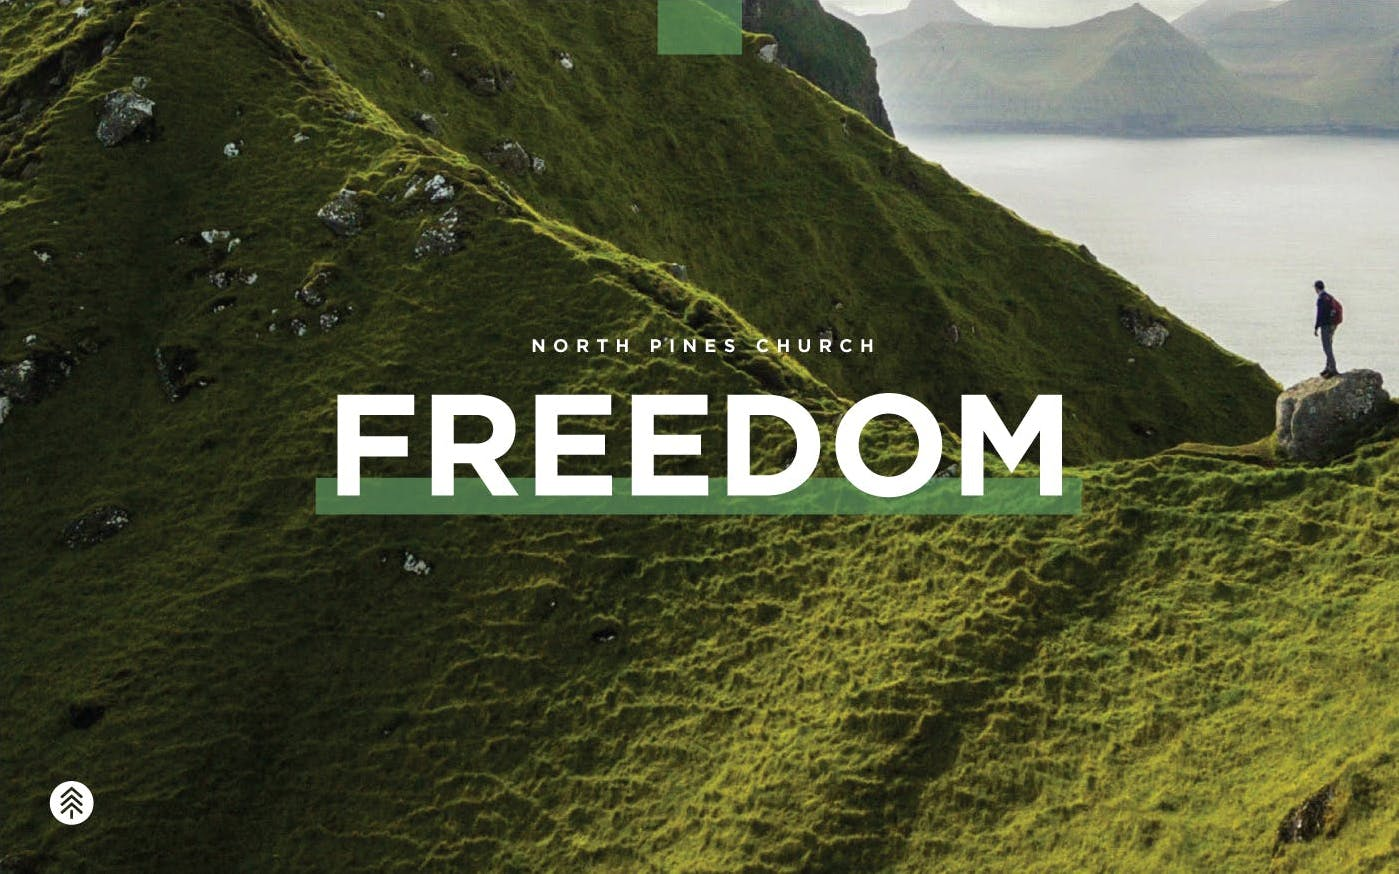 A person overlooking green mountains and lake with Freedom text overlay.